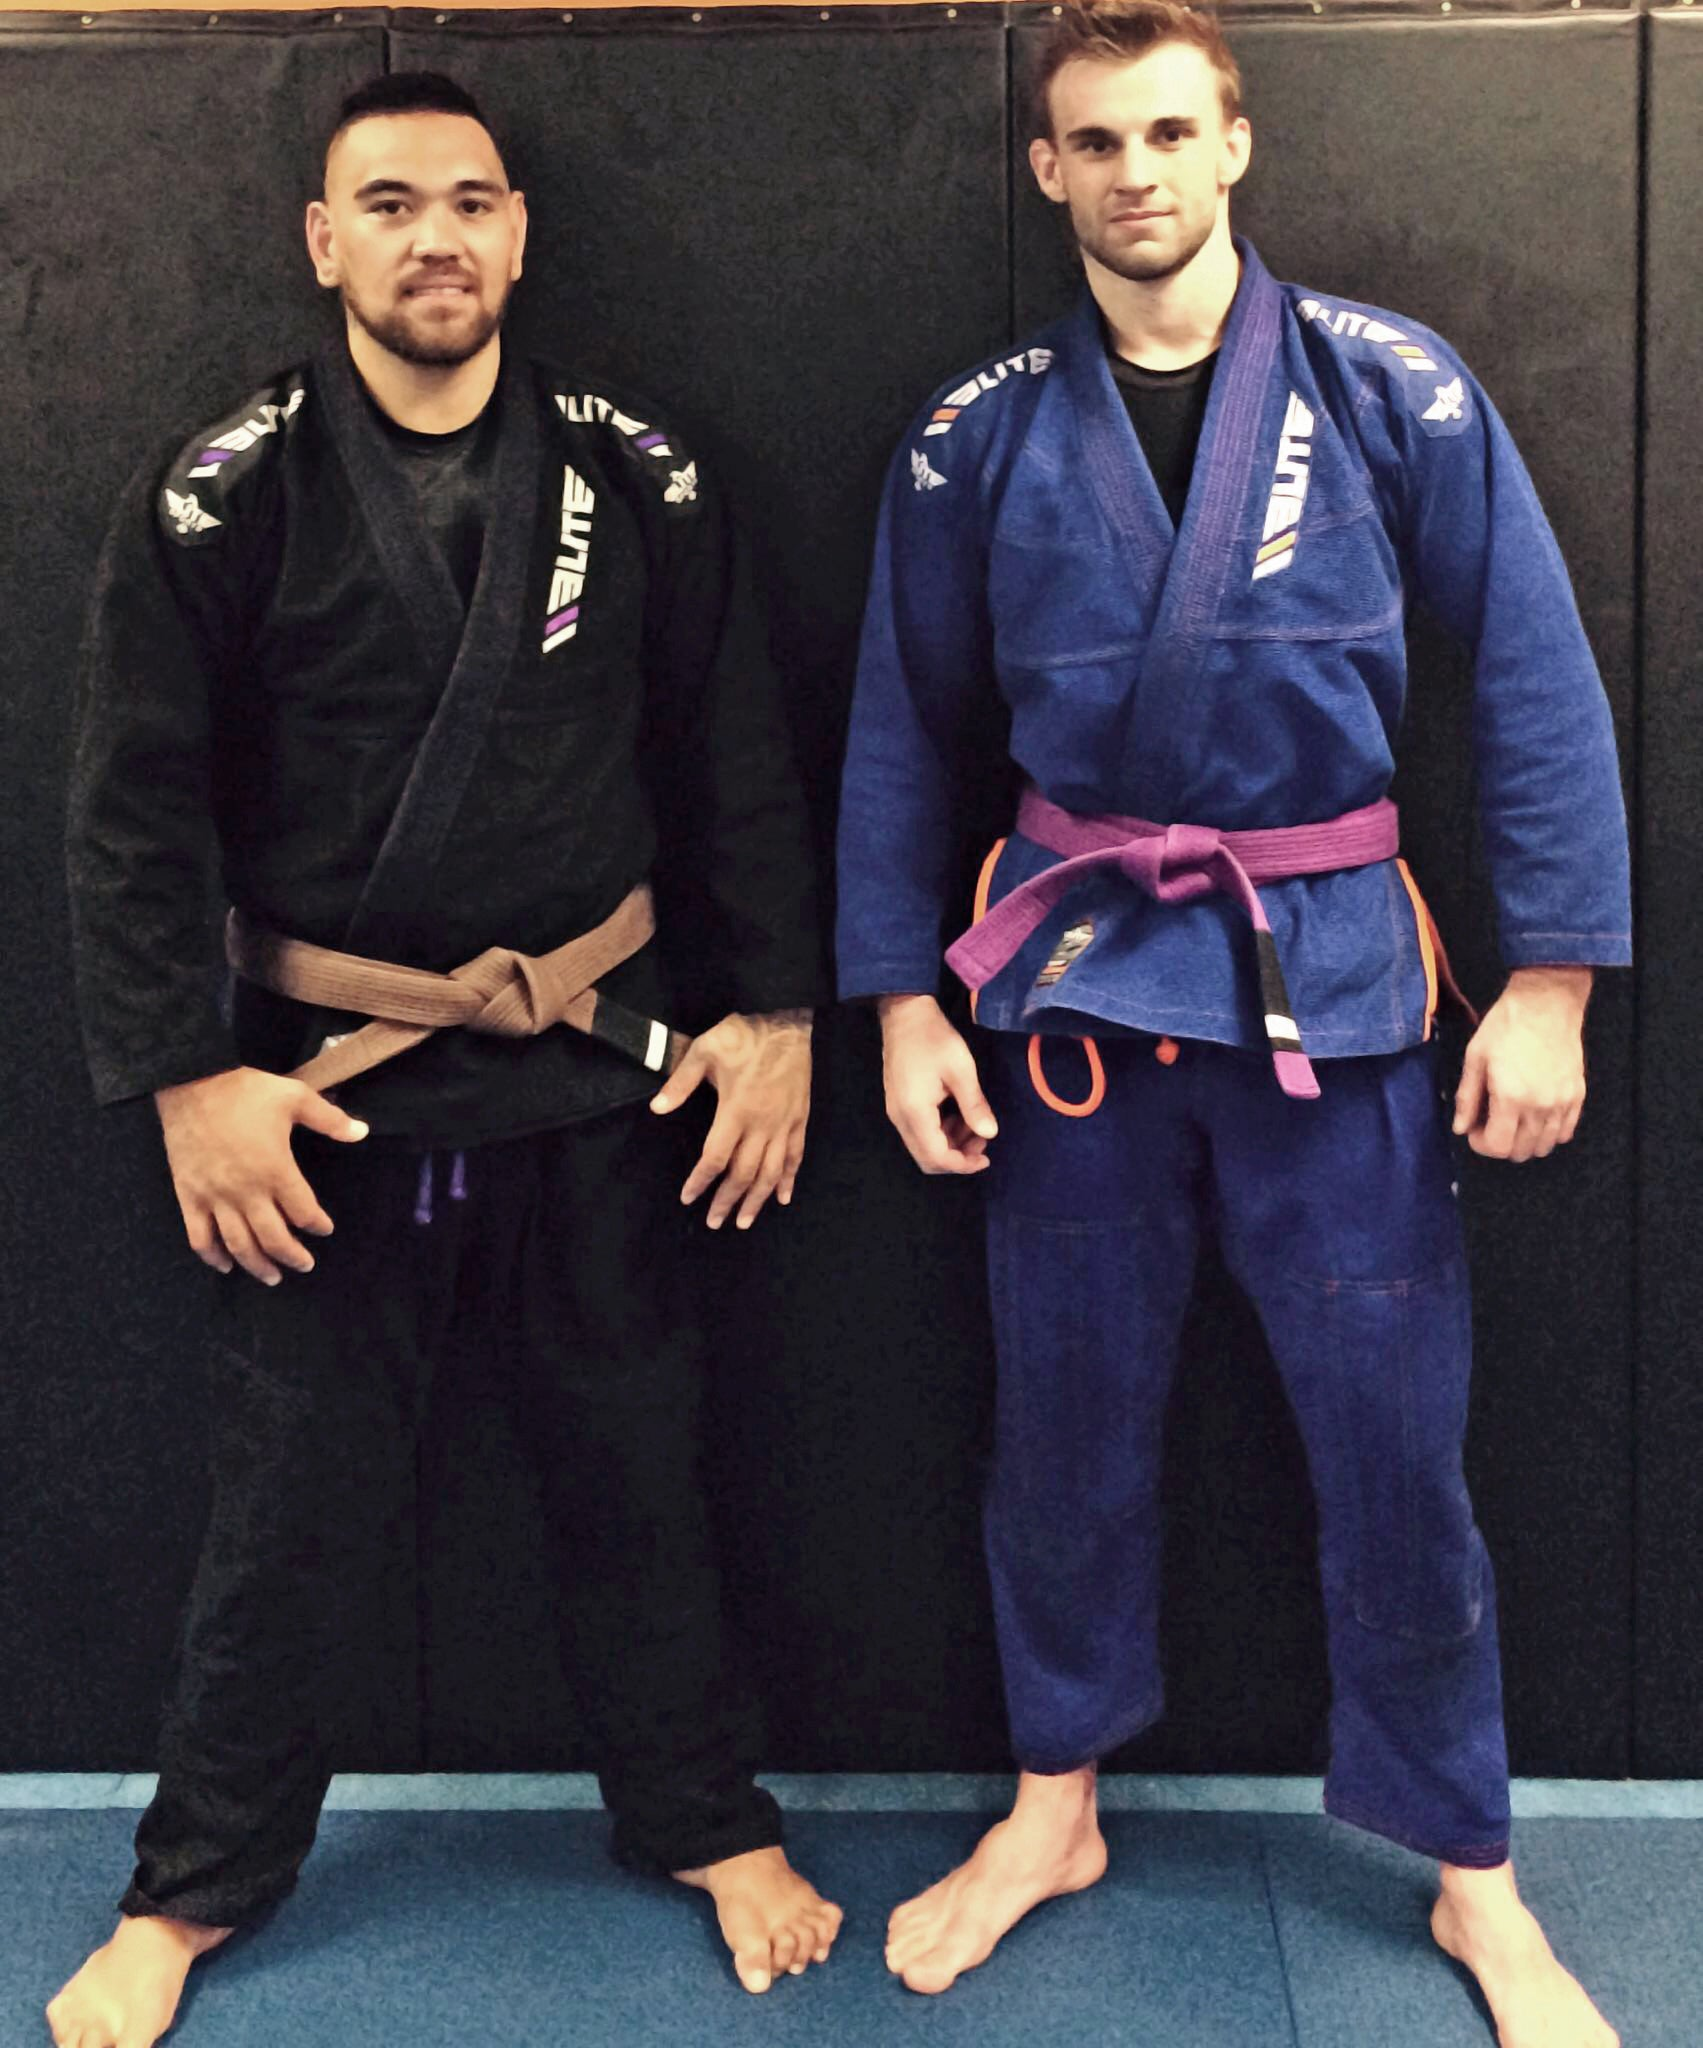 Elite sports Team Elite BJJ Ryan Pasfield image4.jpg